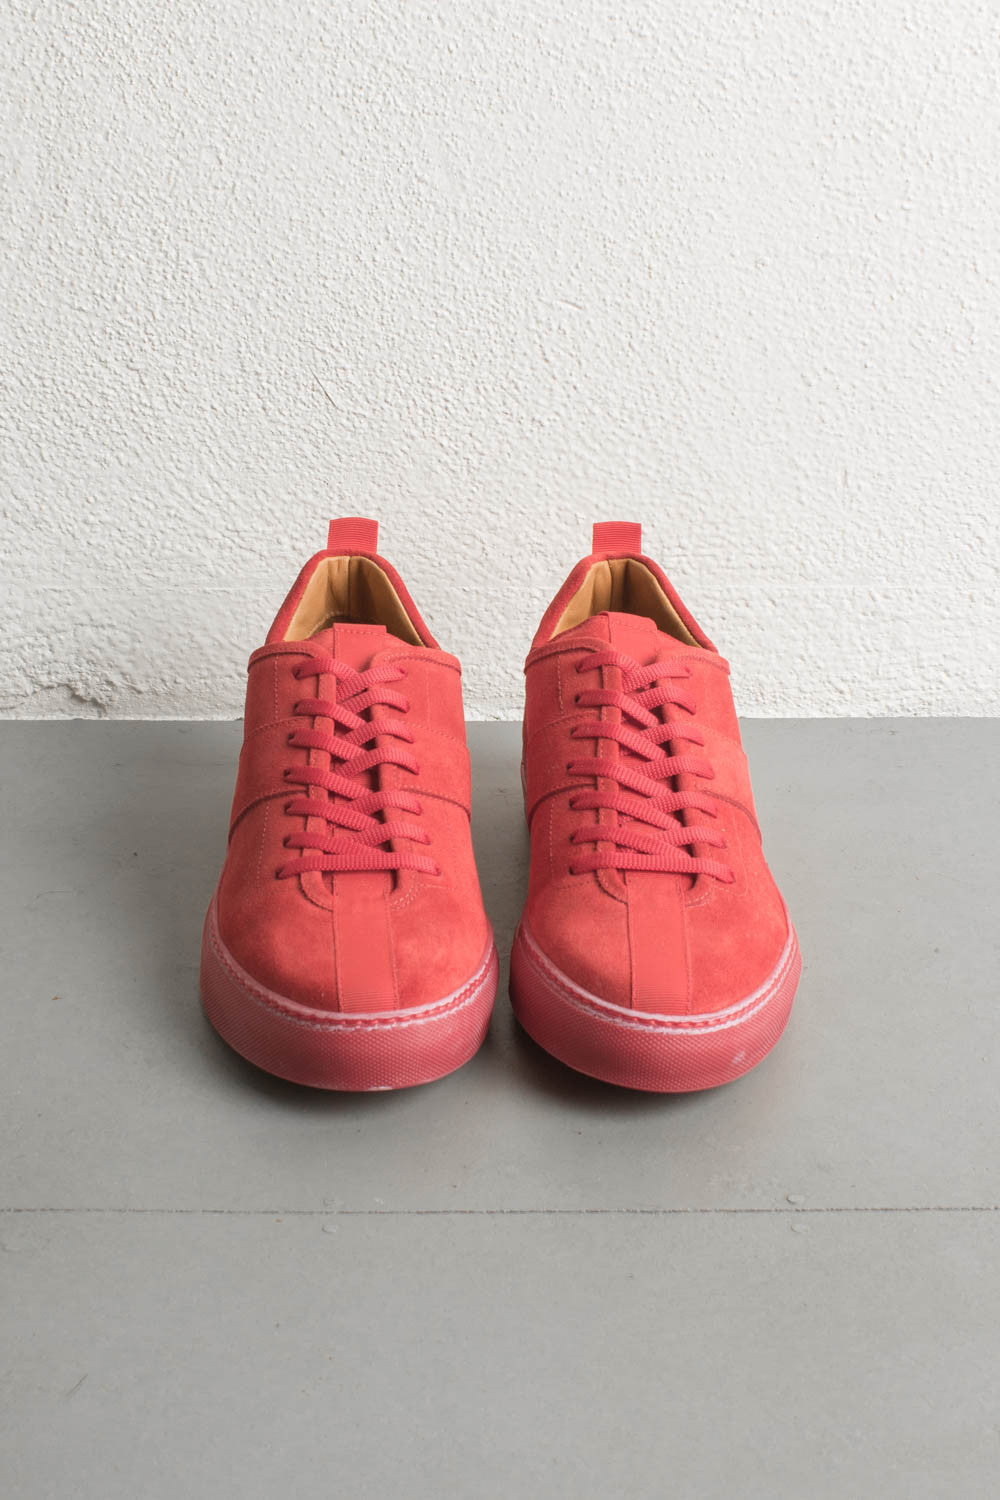 red low top sneakers by daniel patrick